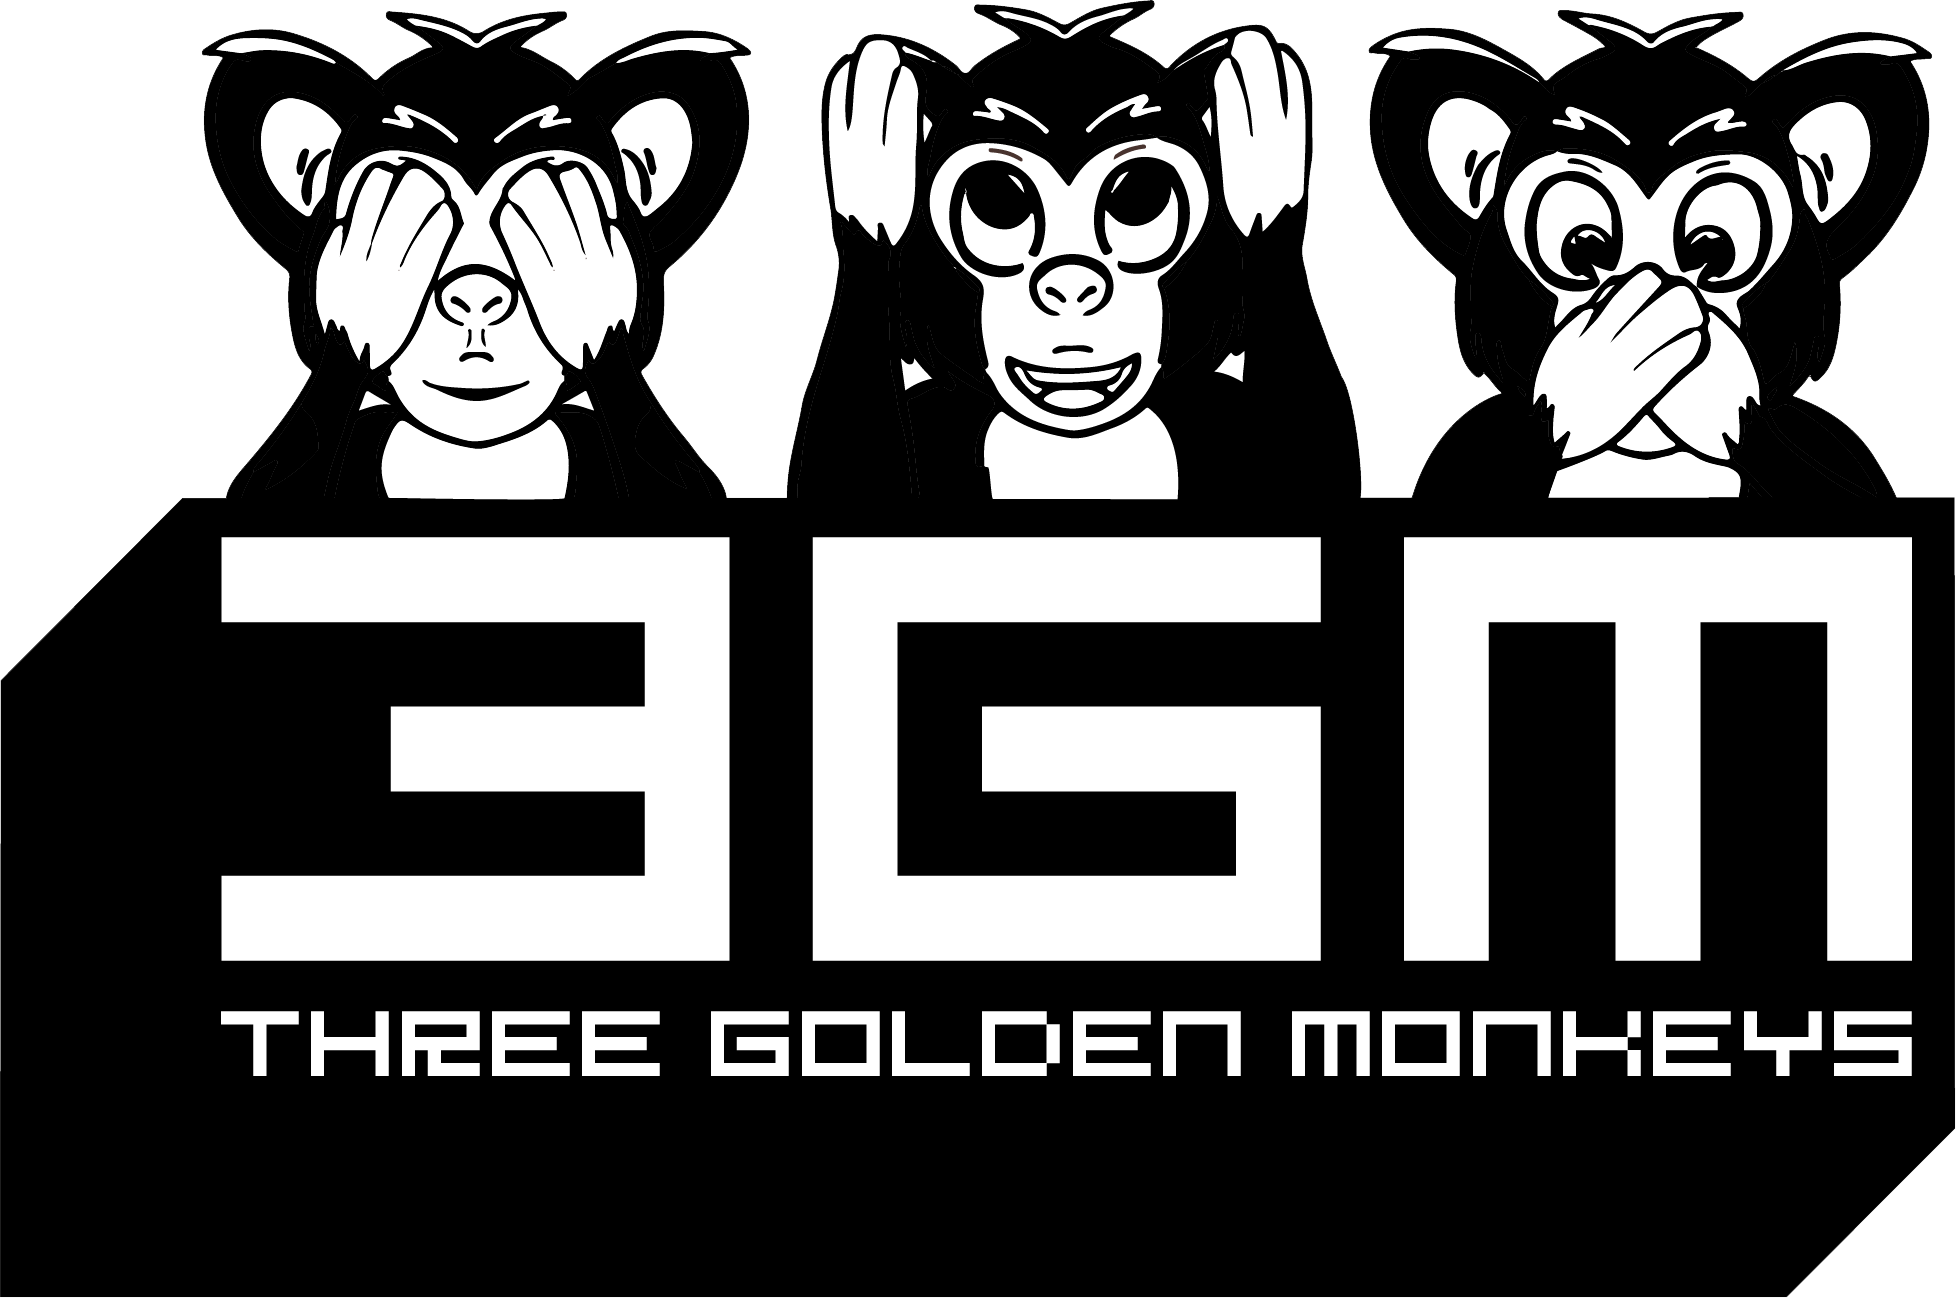 Dino2 - Three Golden Monkeys Lab